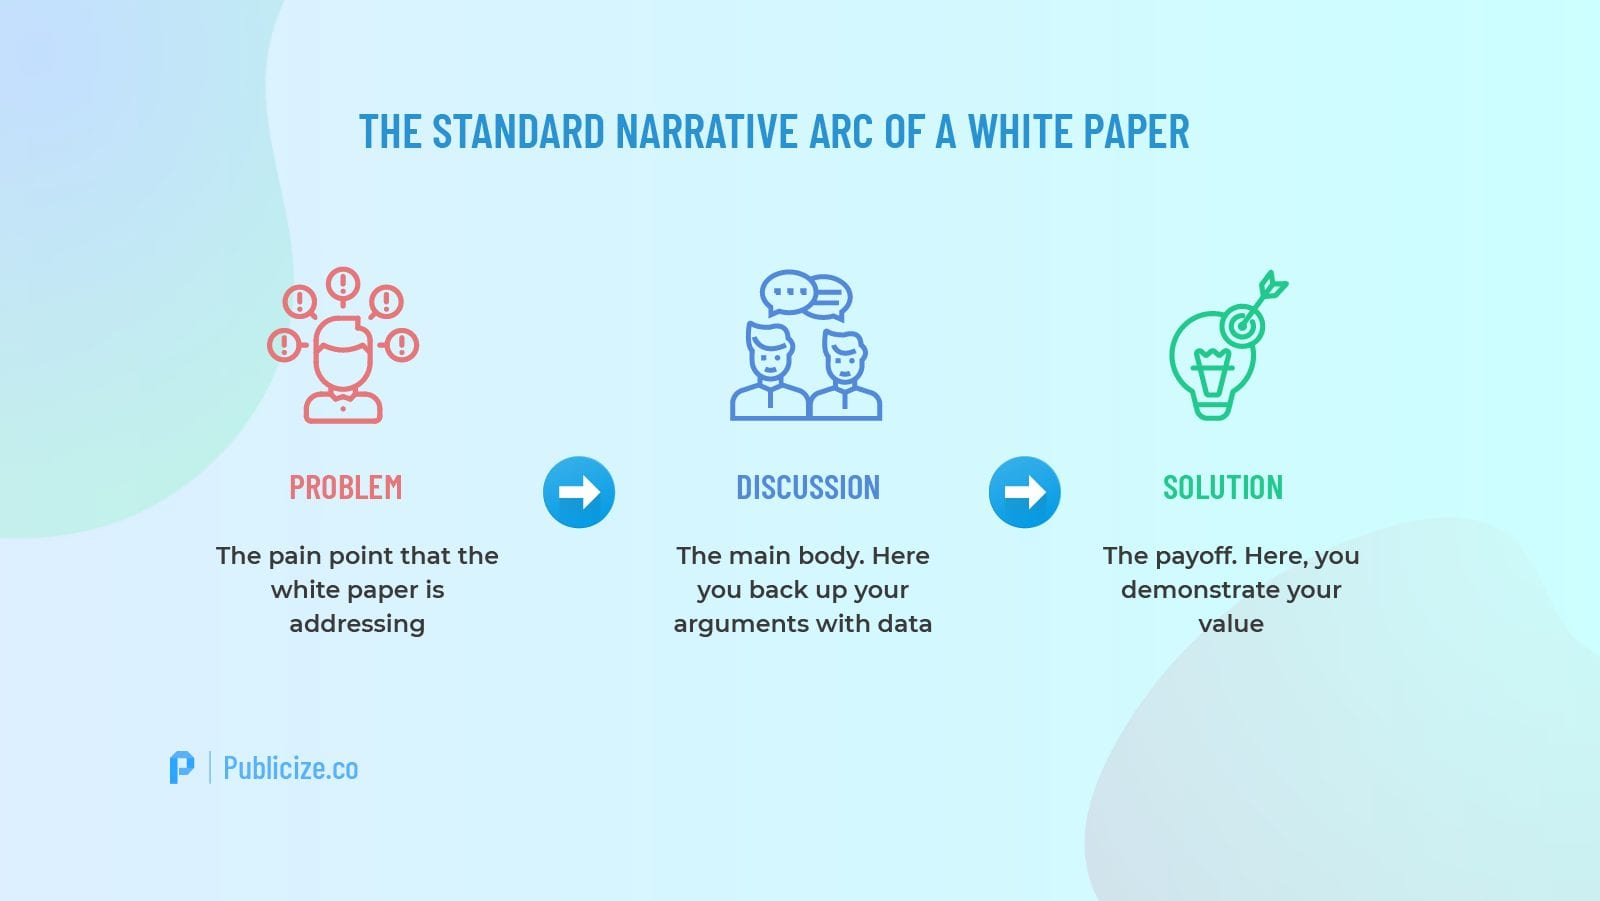 White paper narrative arc infographic